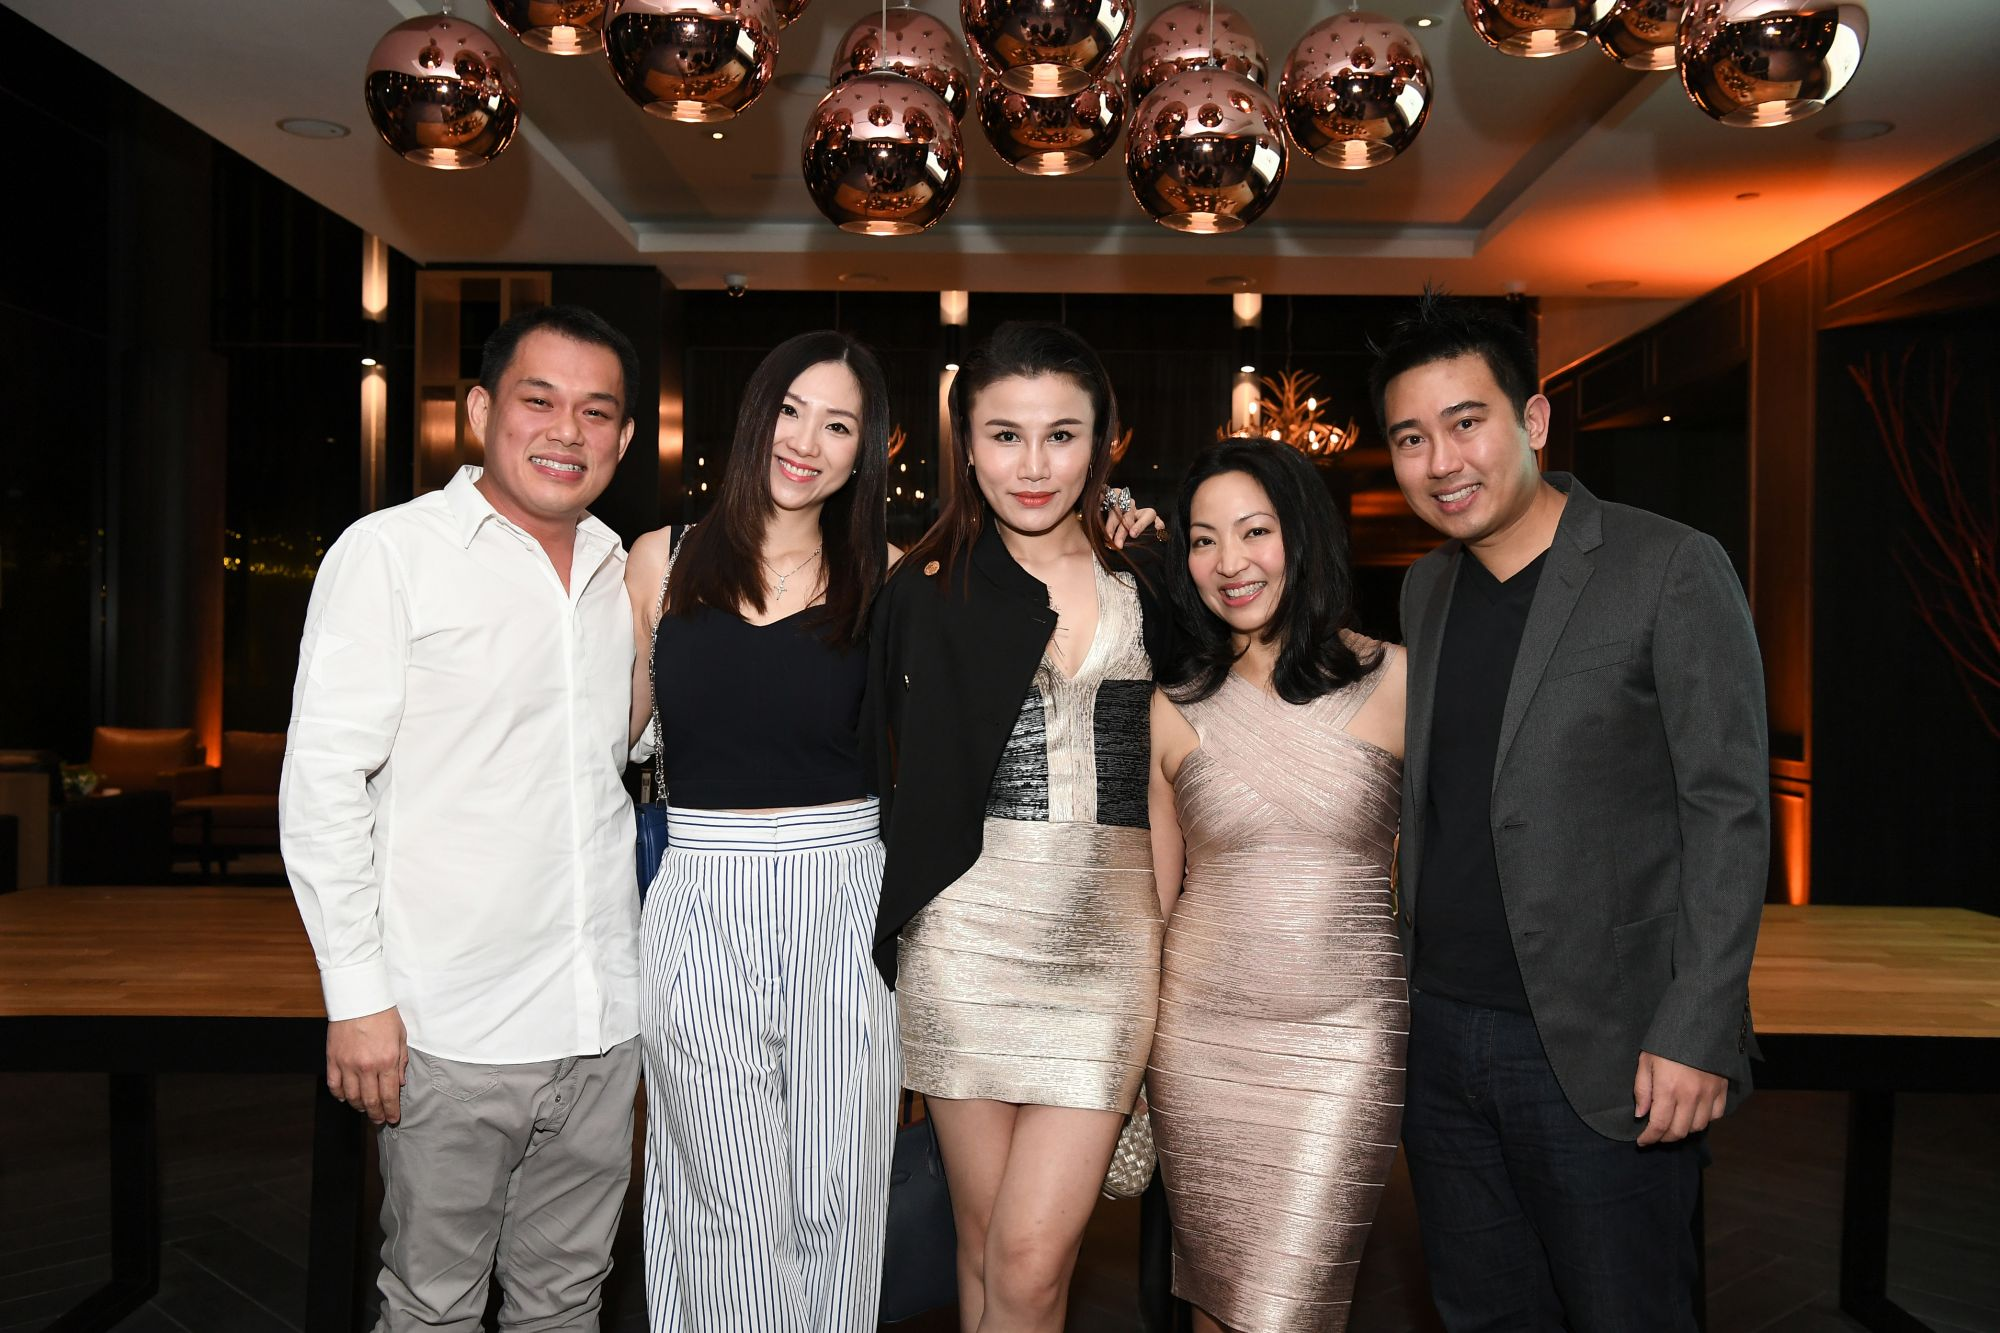 Castiglion del bosco launches the zodiac dog in singapore the trevor toh clara toh jilly wang chan ching yuen calvin chan stopboris Gallery